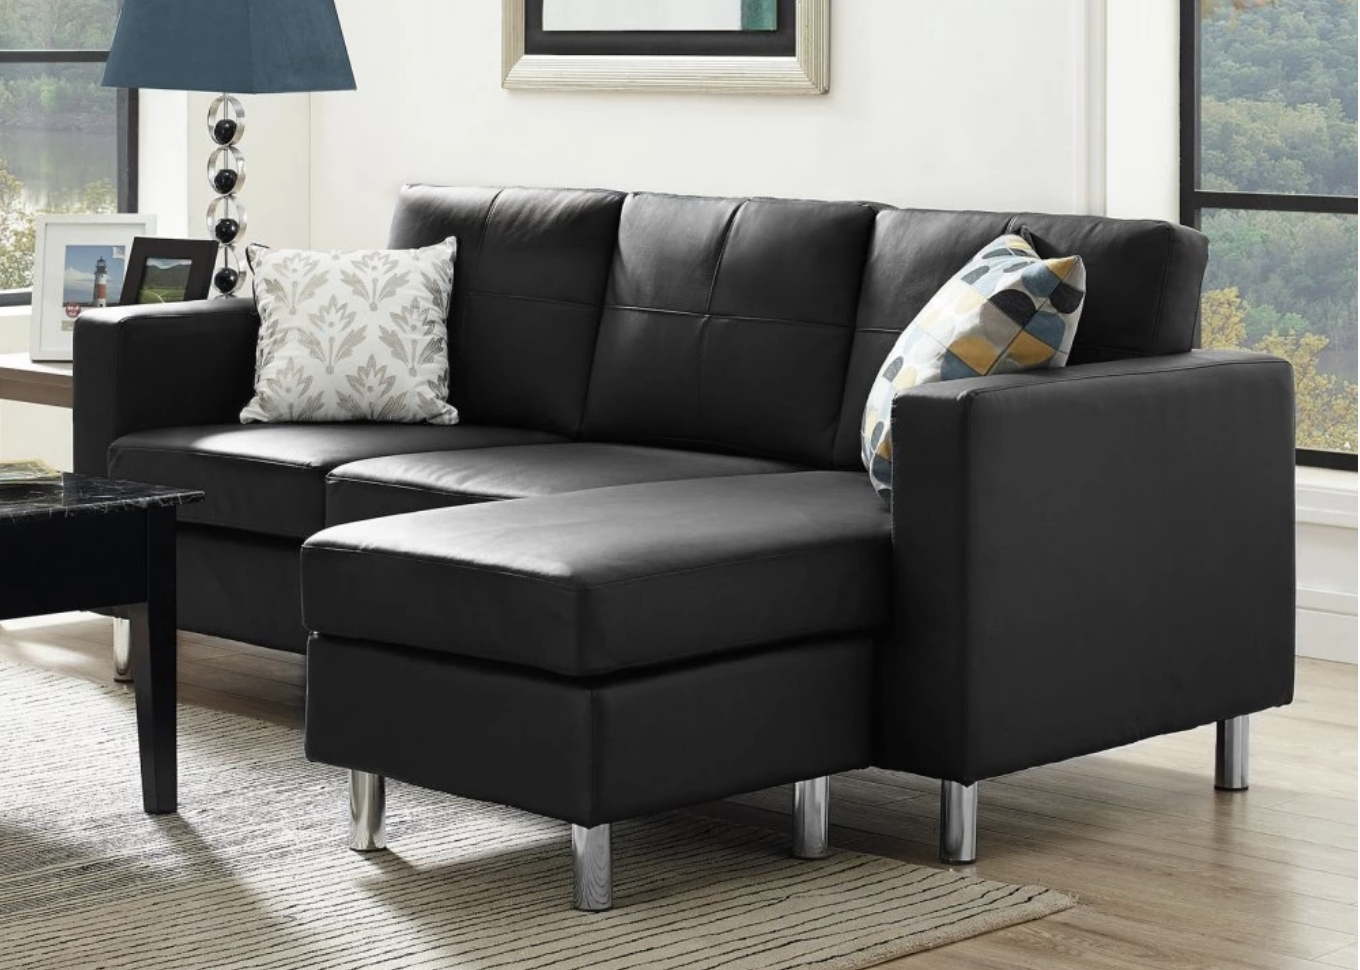 Modern Sectional Sofas For Small Spaces Within Most Up To Date 75 Modern Sectional Sofas For Small Spaces (2018) (View 13 of 15)